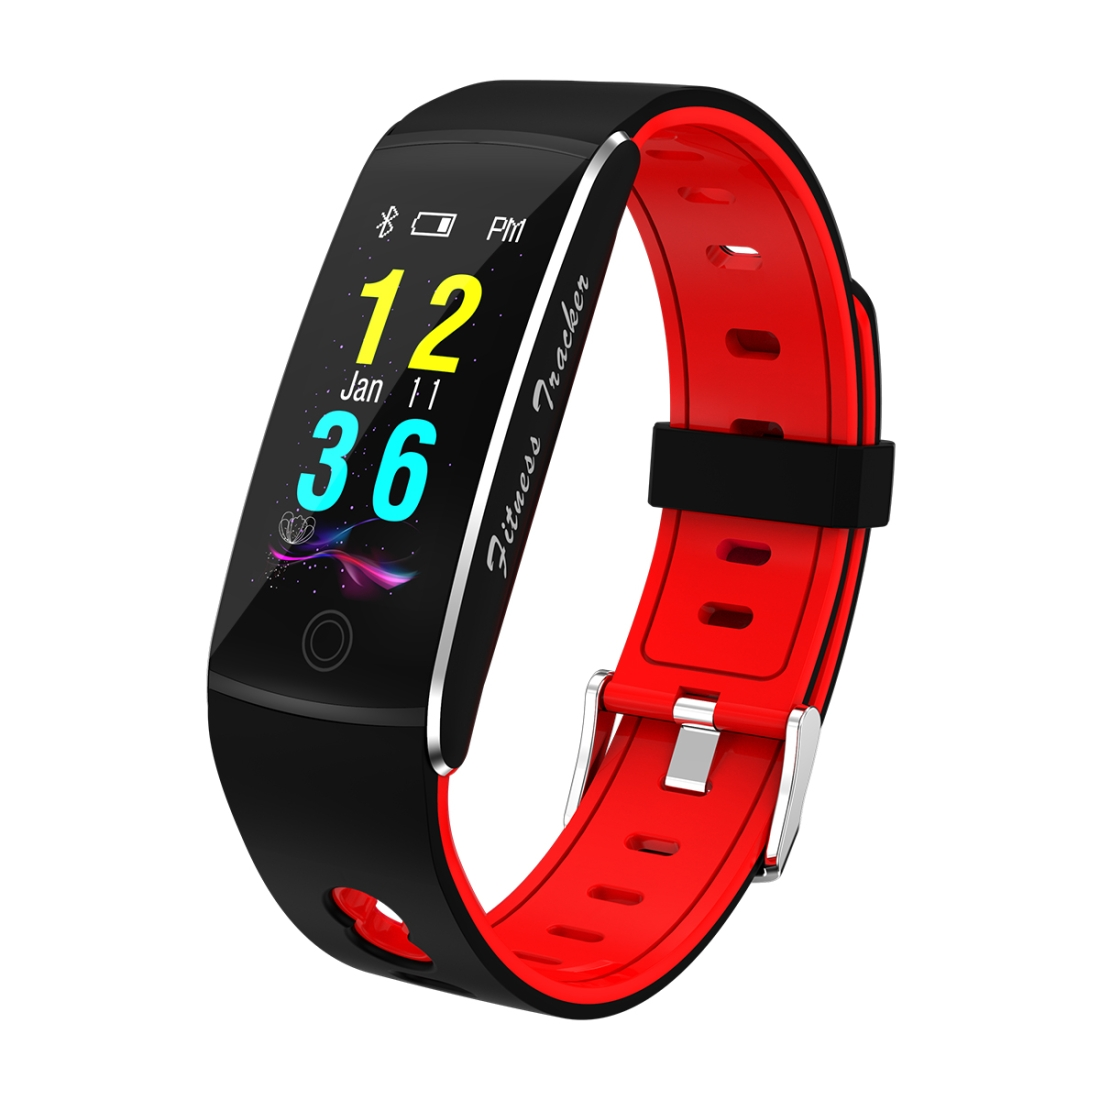 F10 0.96 inch TFT Color Screen Smart Bracelet IP67 Waterproof, Support Call Reminder / Heart Rate Monitoring / Blood Pressure Monitoring / Sleep Monitoring / Blood Oxygen Monitoring (Red)